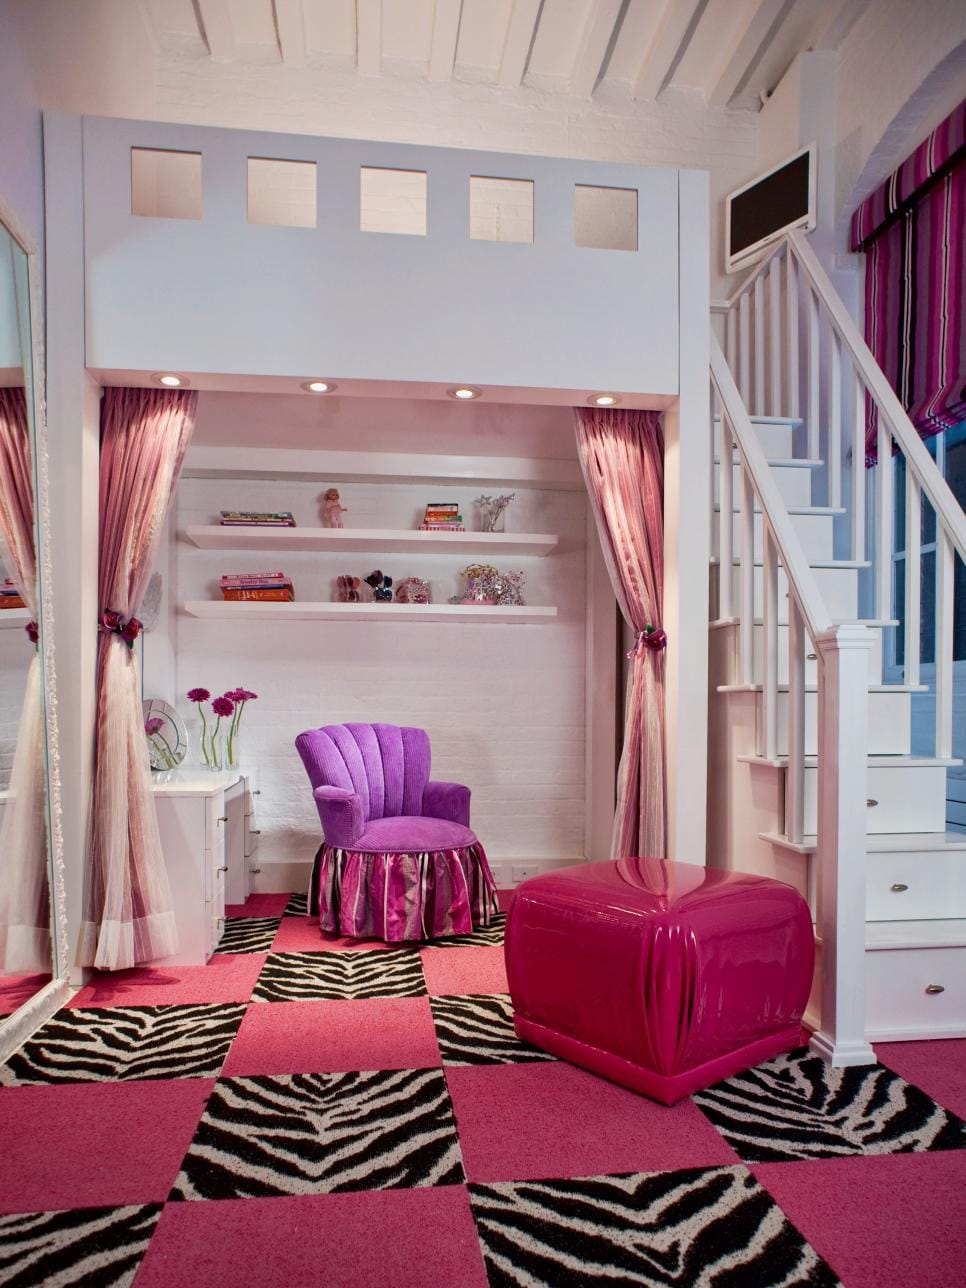 luxury bedroom furniture purple elements. Luxurious Elements Fill This Little Girl\u0027s Room, From The Purple Velvet Chair To Plush Pink-and-zebra-print Carpet Tiles. Luxury Bedroom Furniture